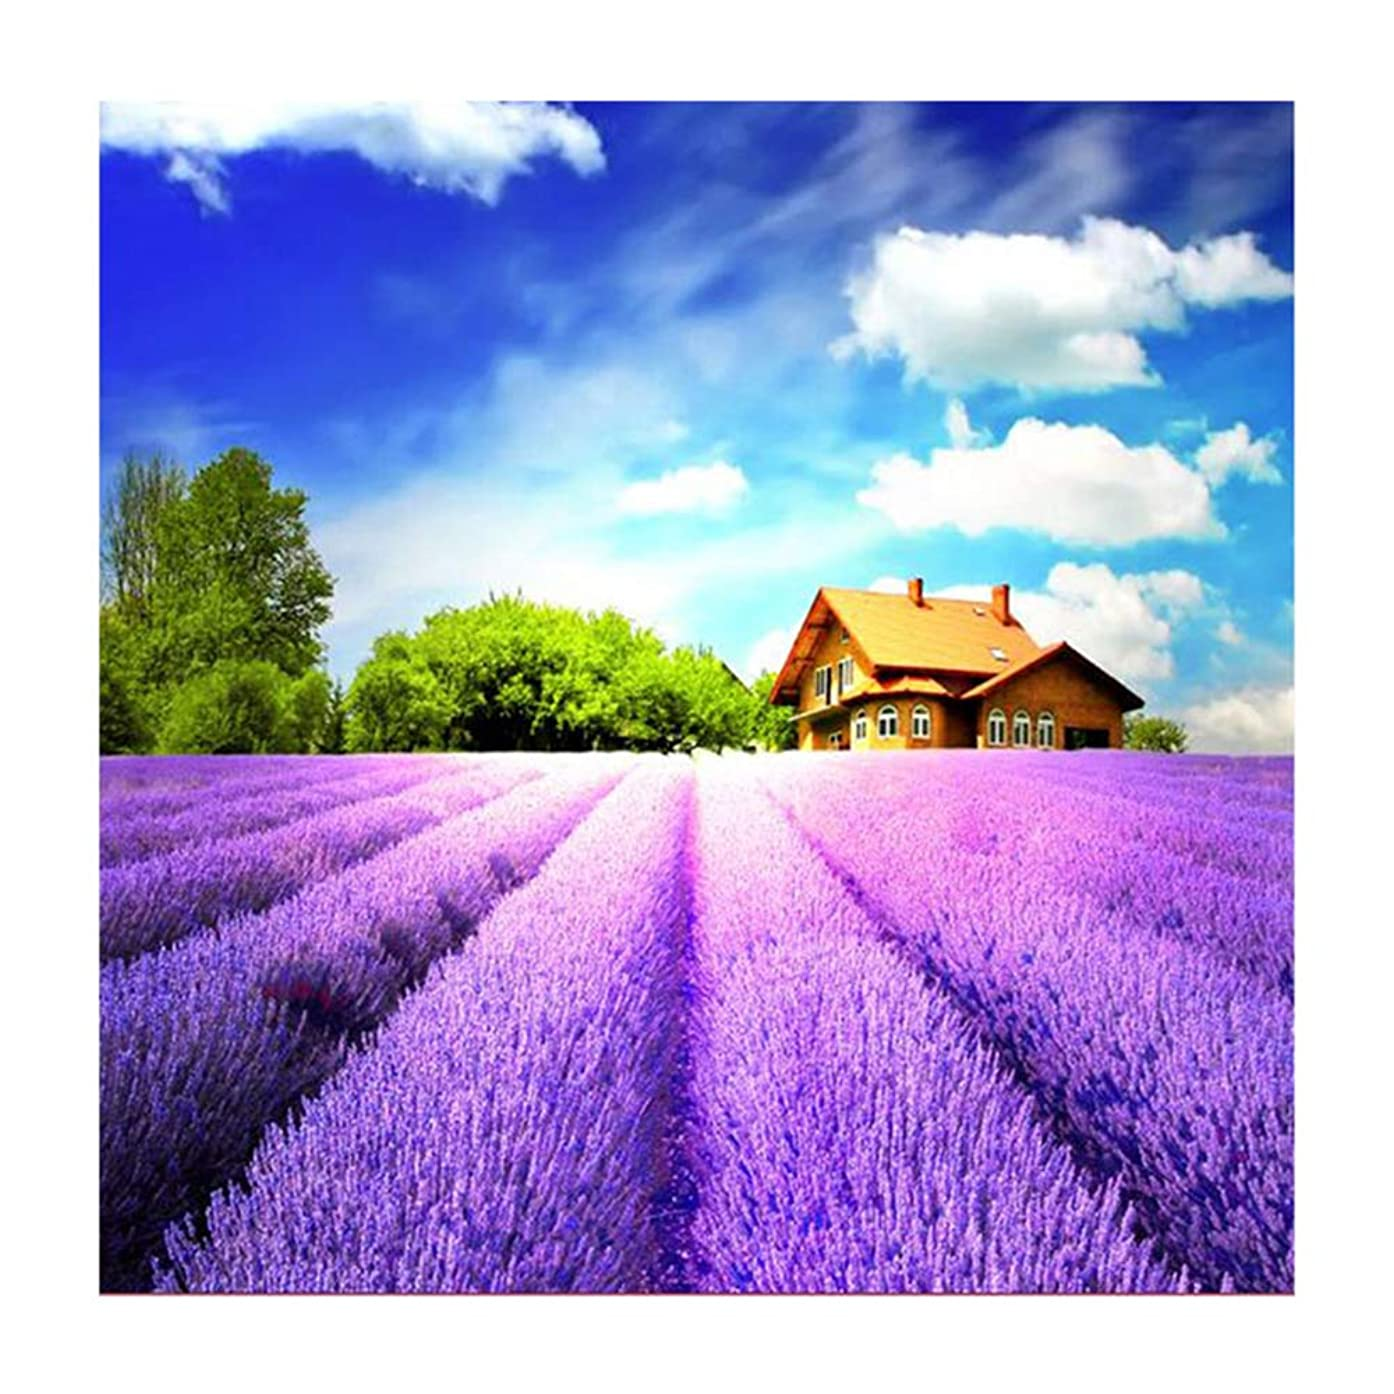 Crafts Graphy 5D DIY Diamond Painting Lavender Landscape Embroidery Cross Stitch Mosaic Rhinestone Decor (12x12inch) Craft for Home Decorations Wall Decor (3056)